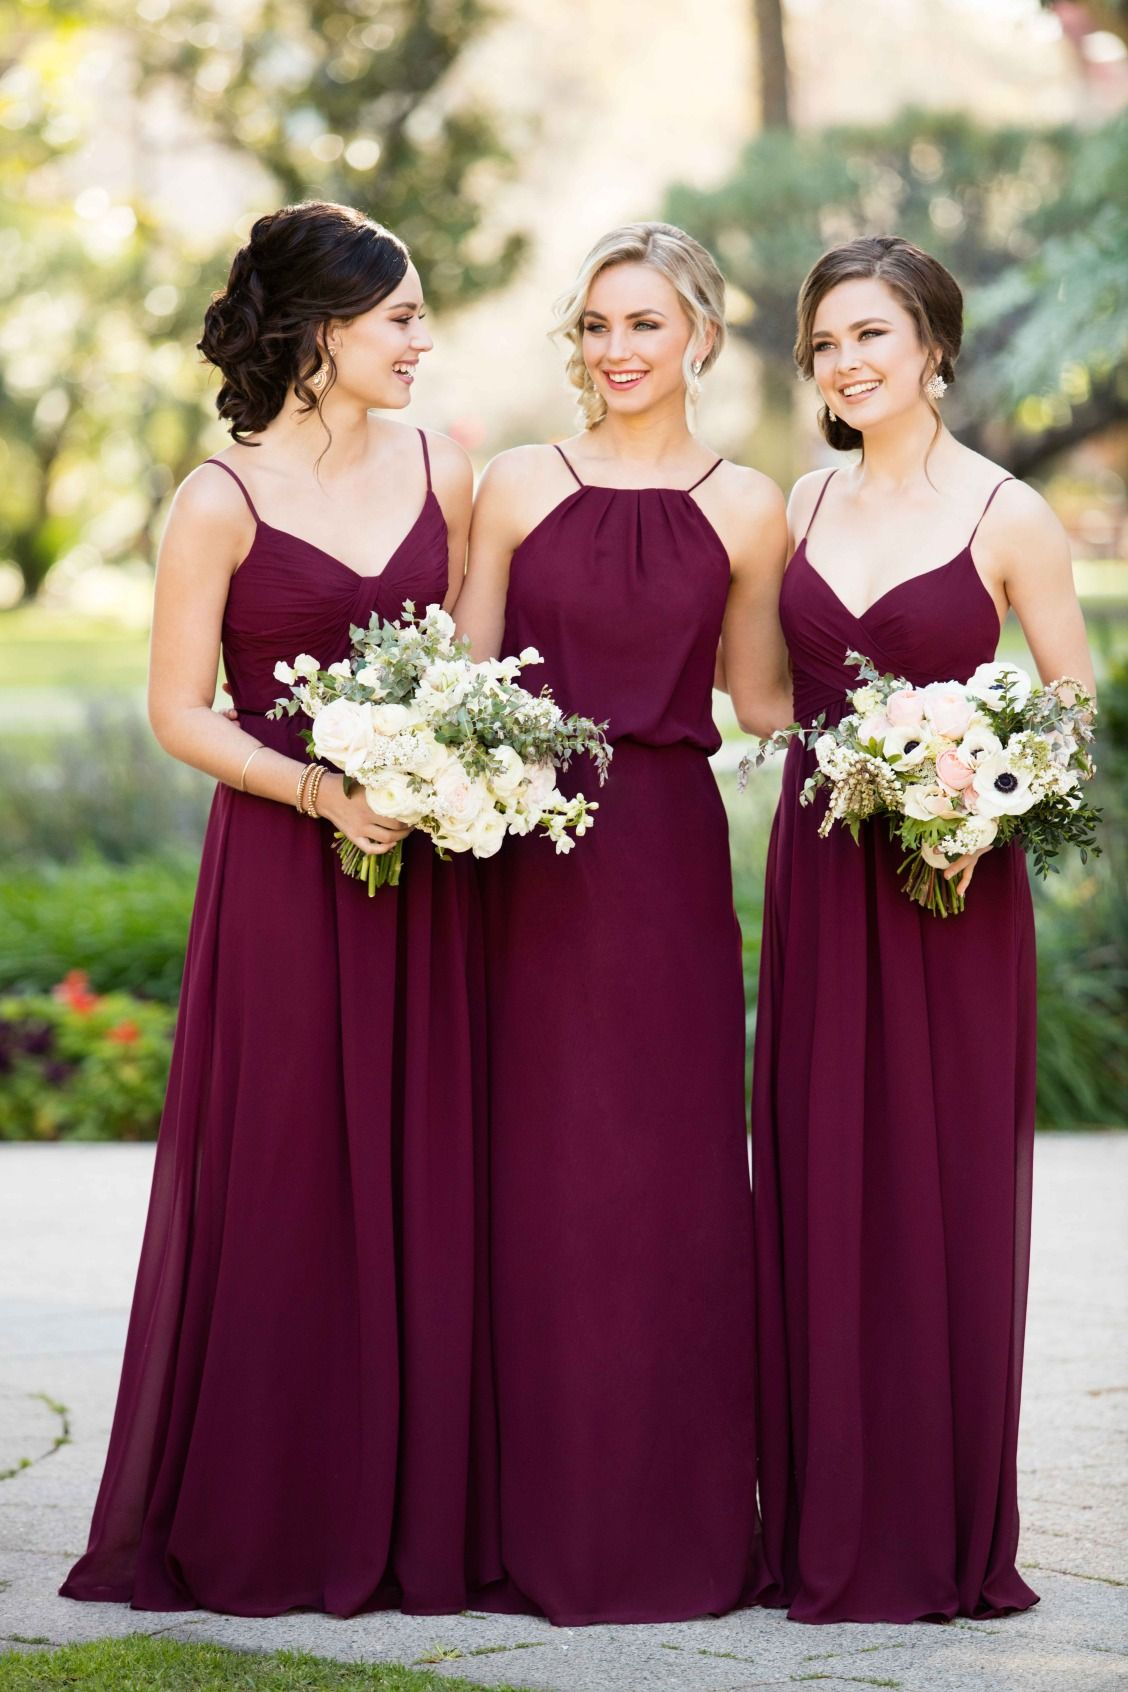 Burgundy Bridesmaids Dress for a mix and match bridal party! 9c7f7a41e4de